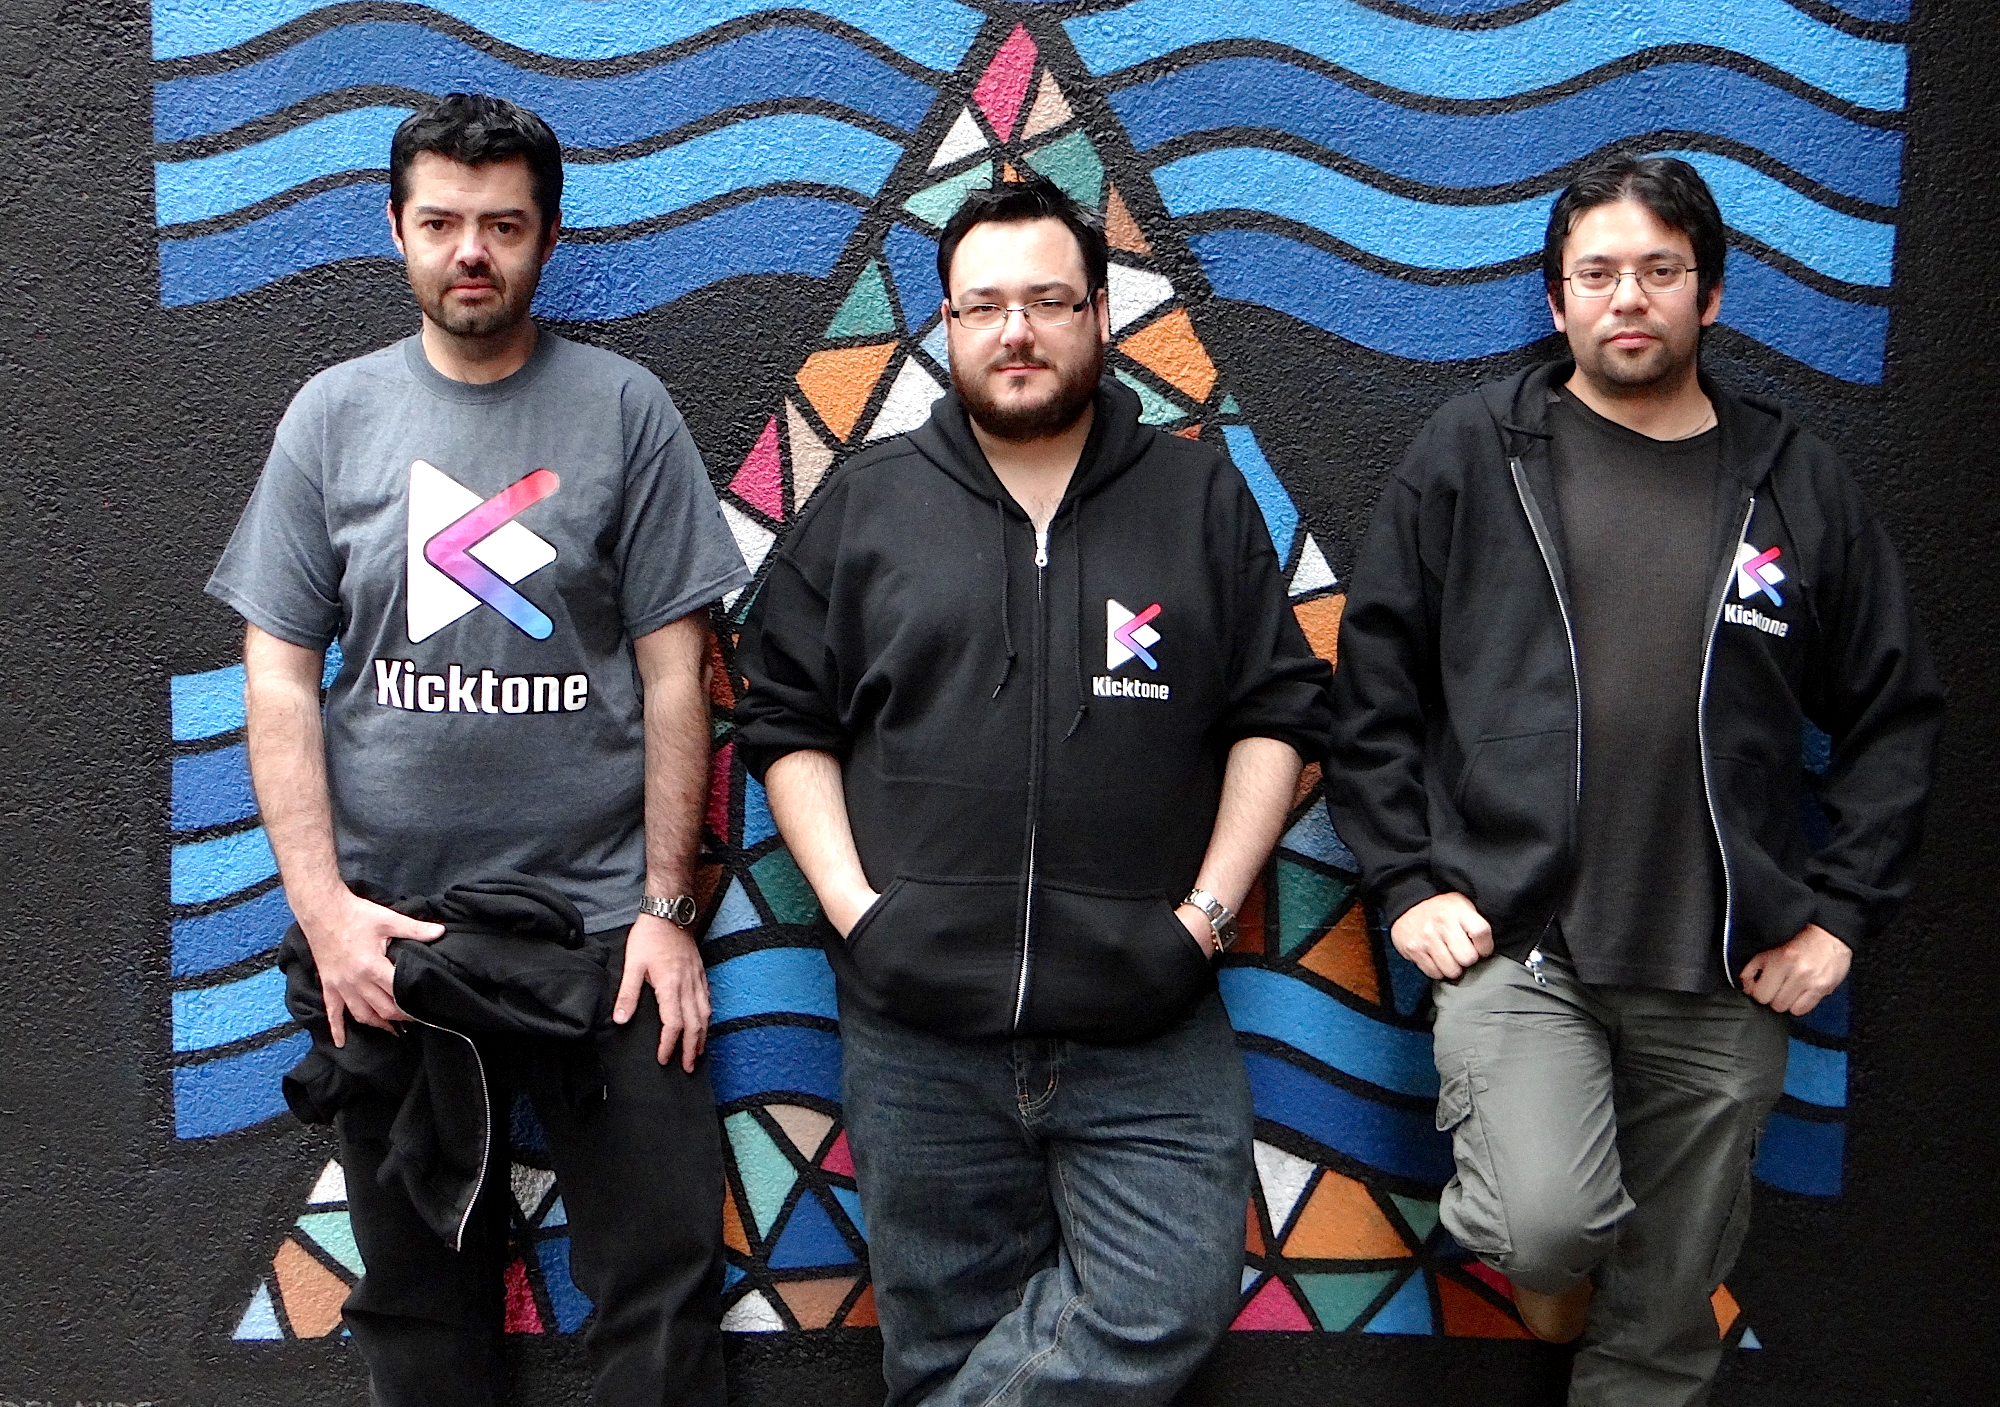 Music is back in business with new online platform Kicktone